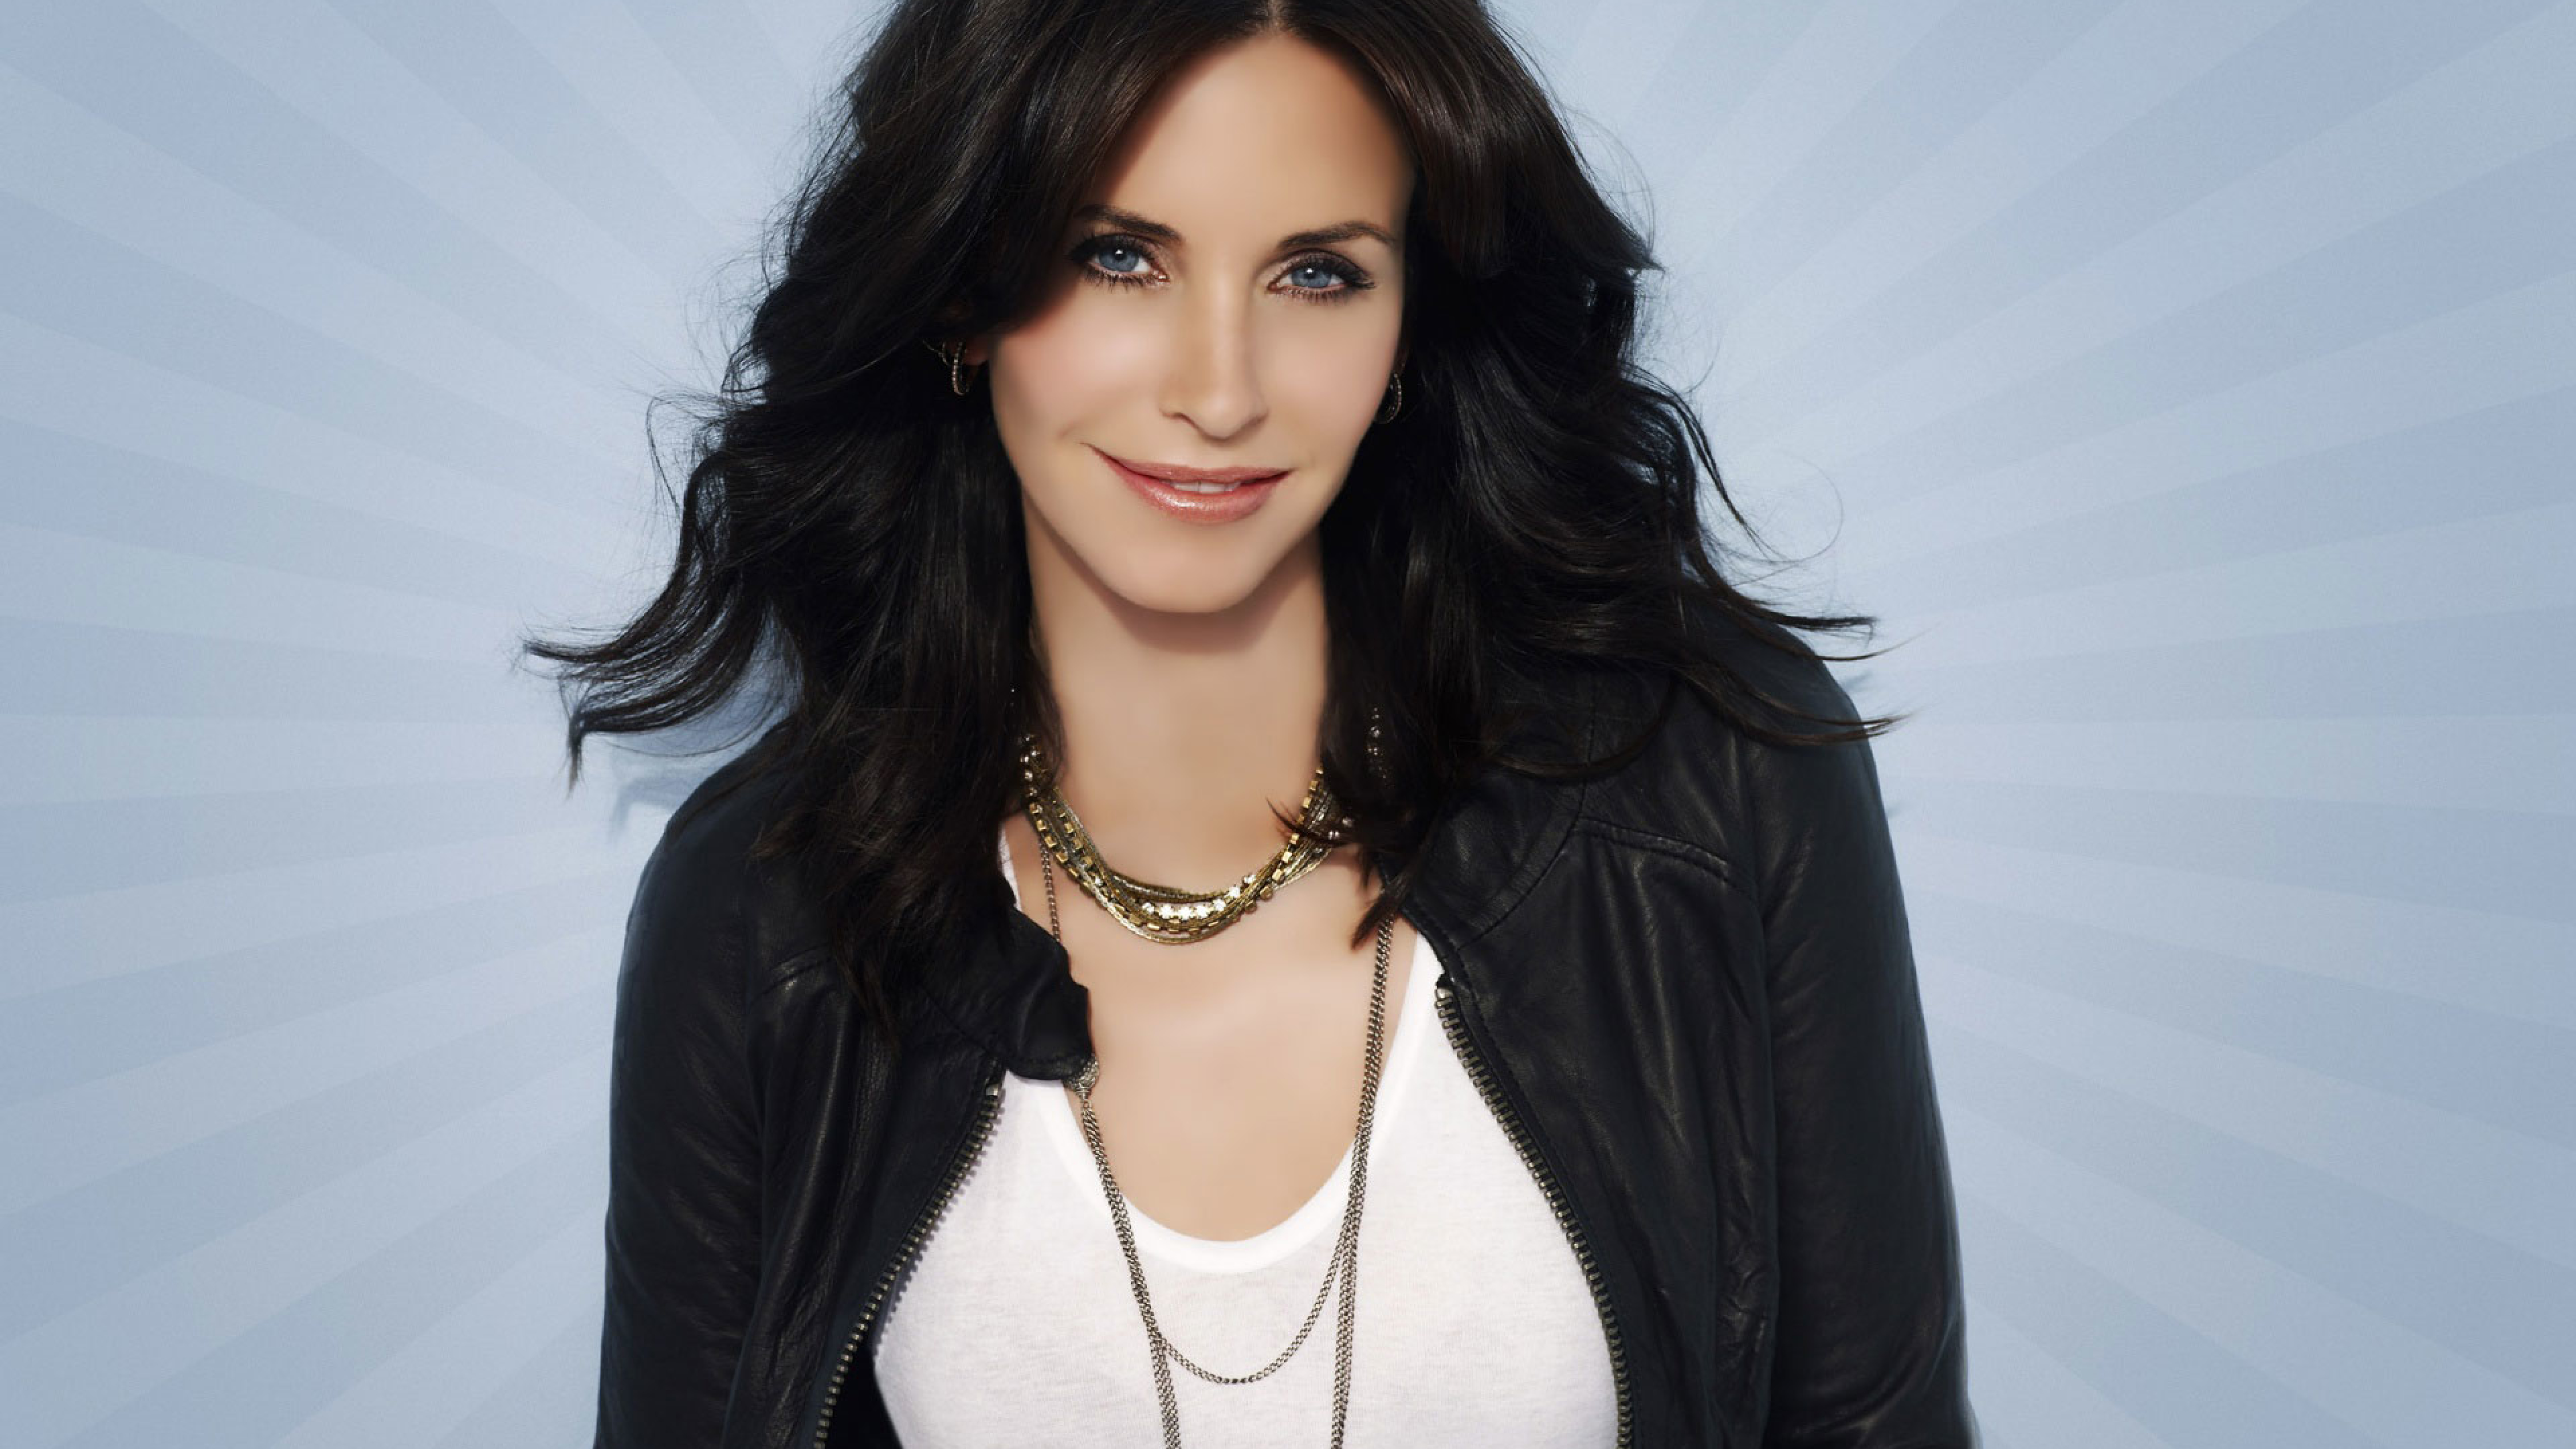 Courtney Cox Smile Photoshoot Full Hd Wallpaper